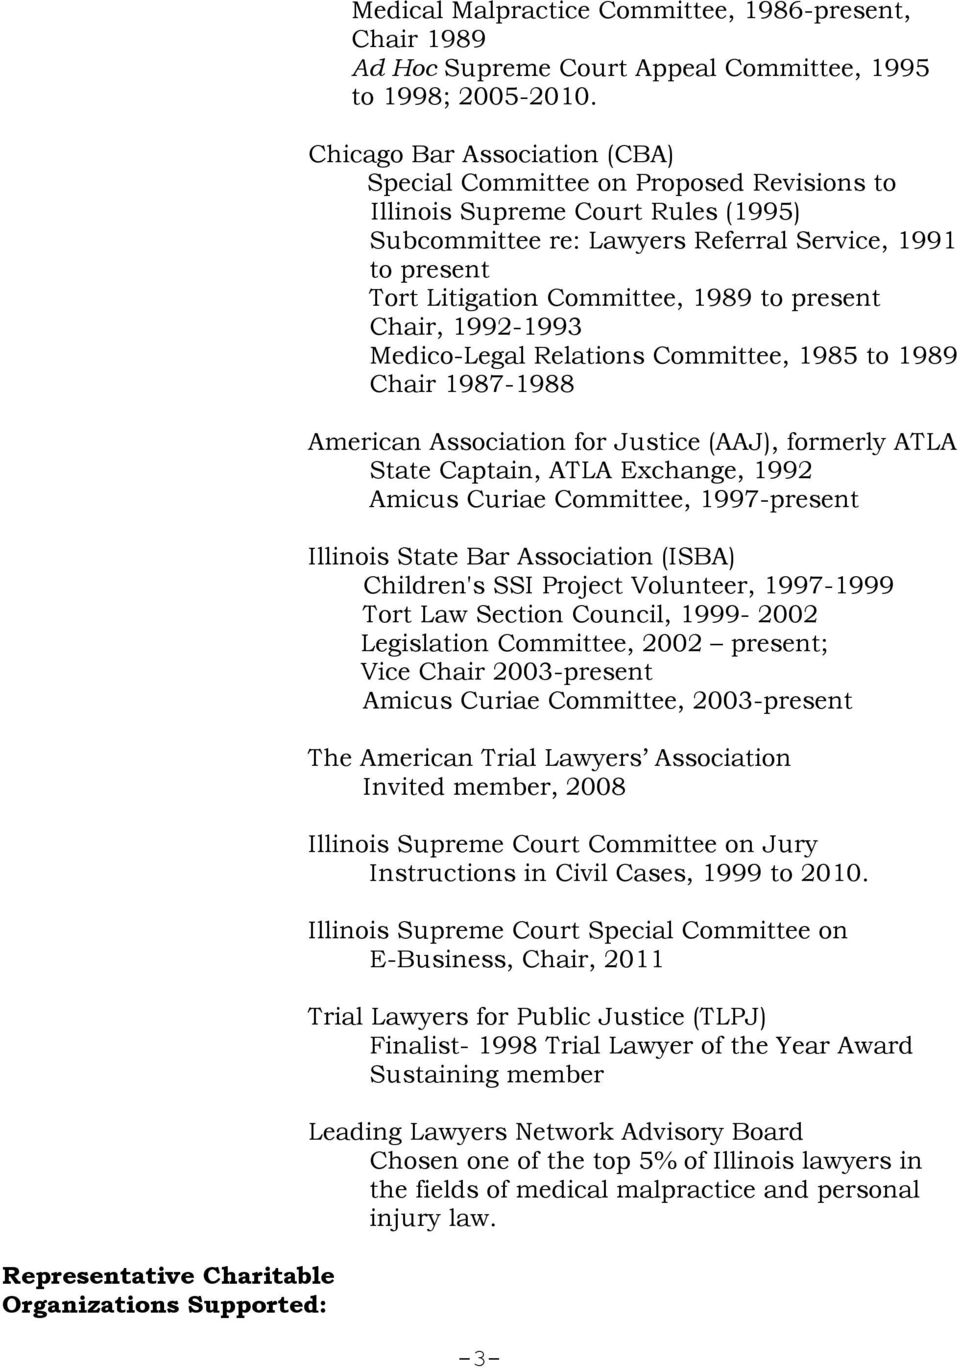 to present Chair, 1992-1993 Medico-Legal Relations Committee, 1985 to 1989 Chair 1987-1988 American Association for Justice (AAJ), formerly ATLA State Captain, ATLA Exchange, 1992 Amicus Curiae